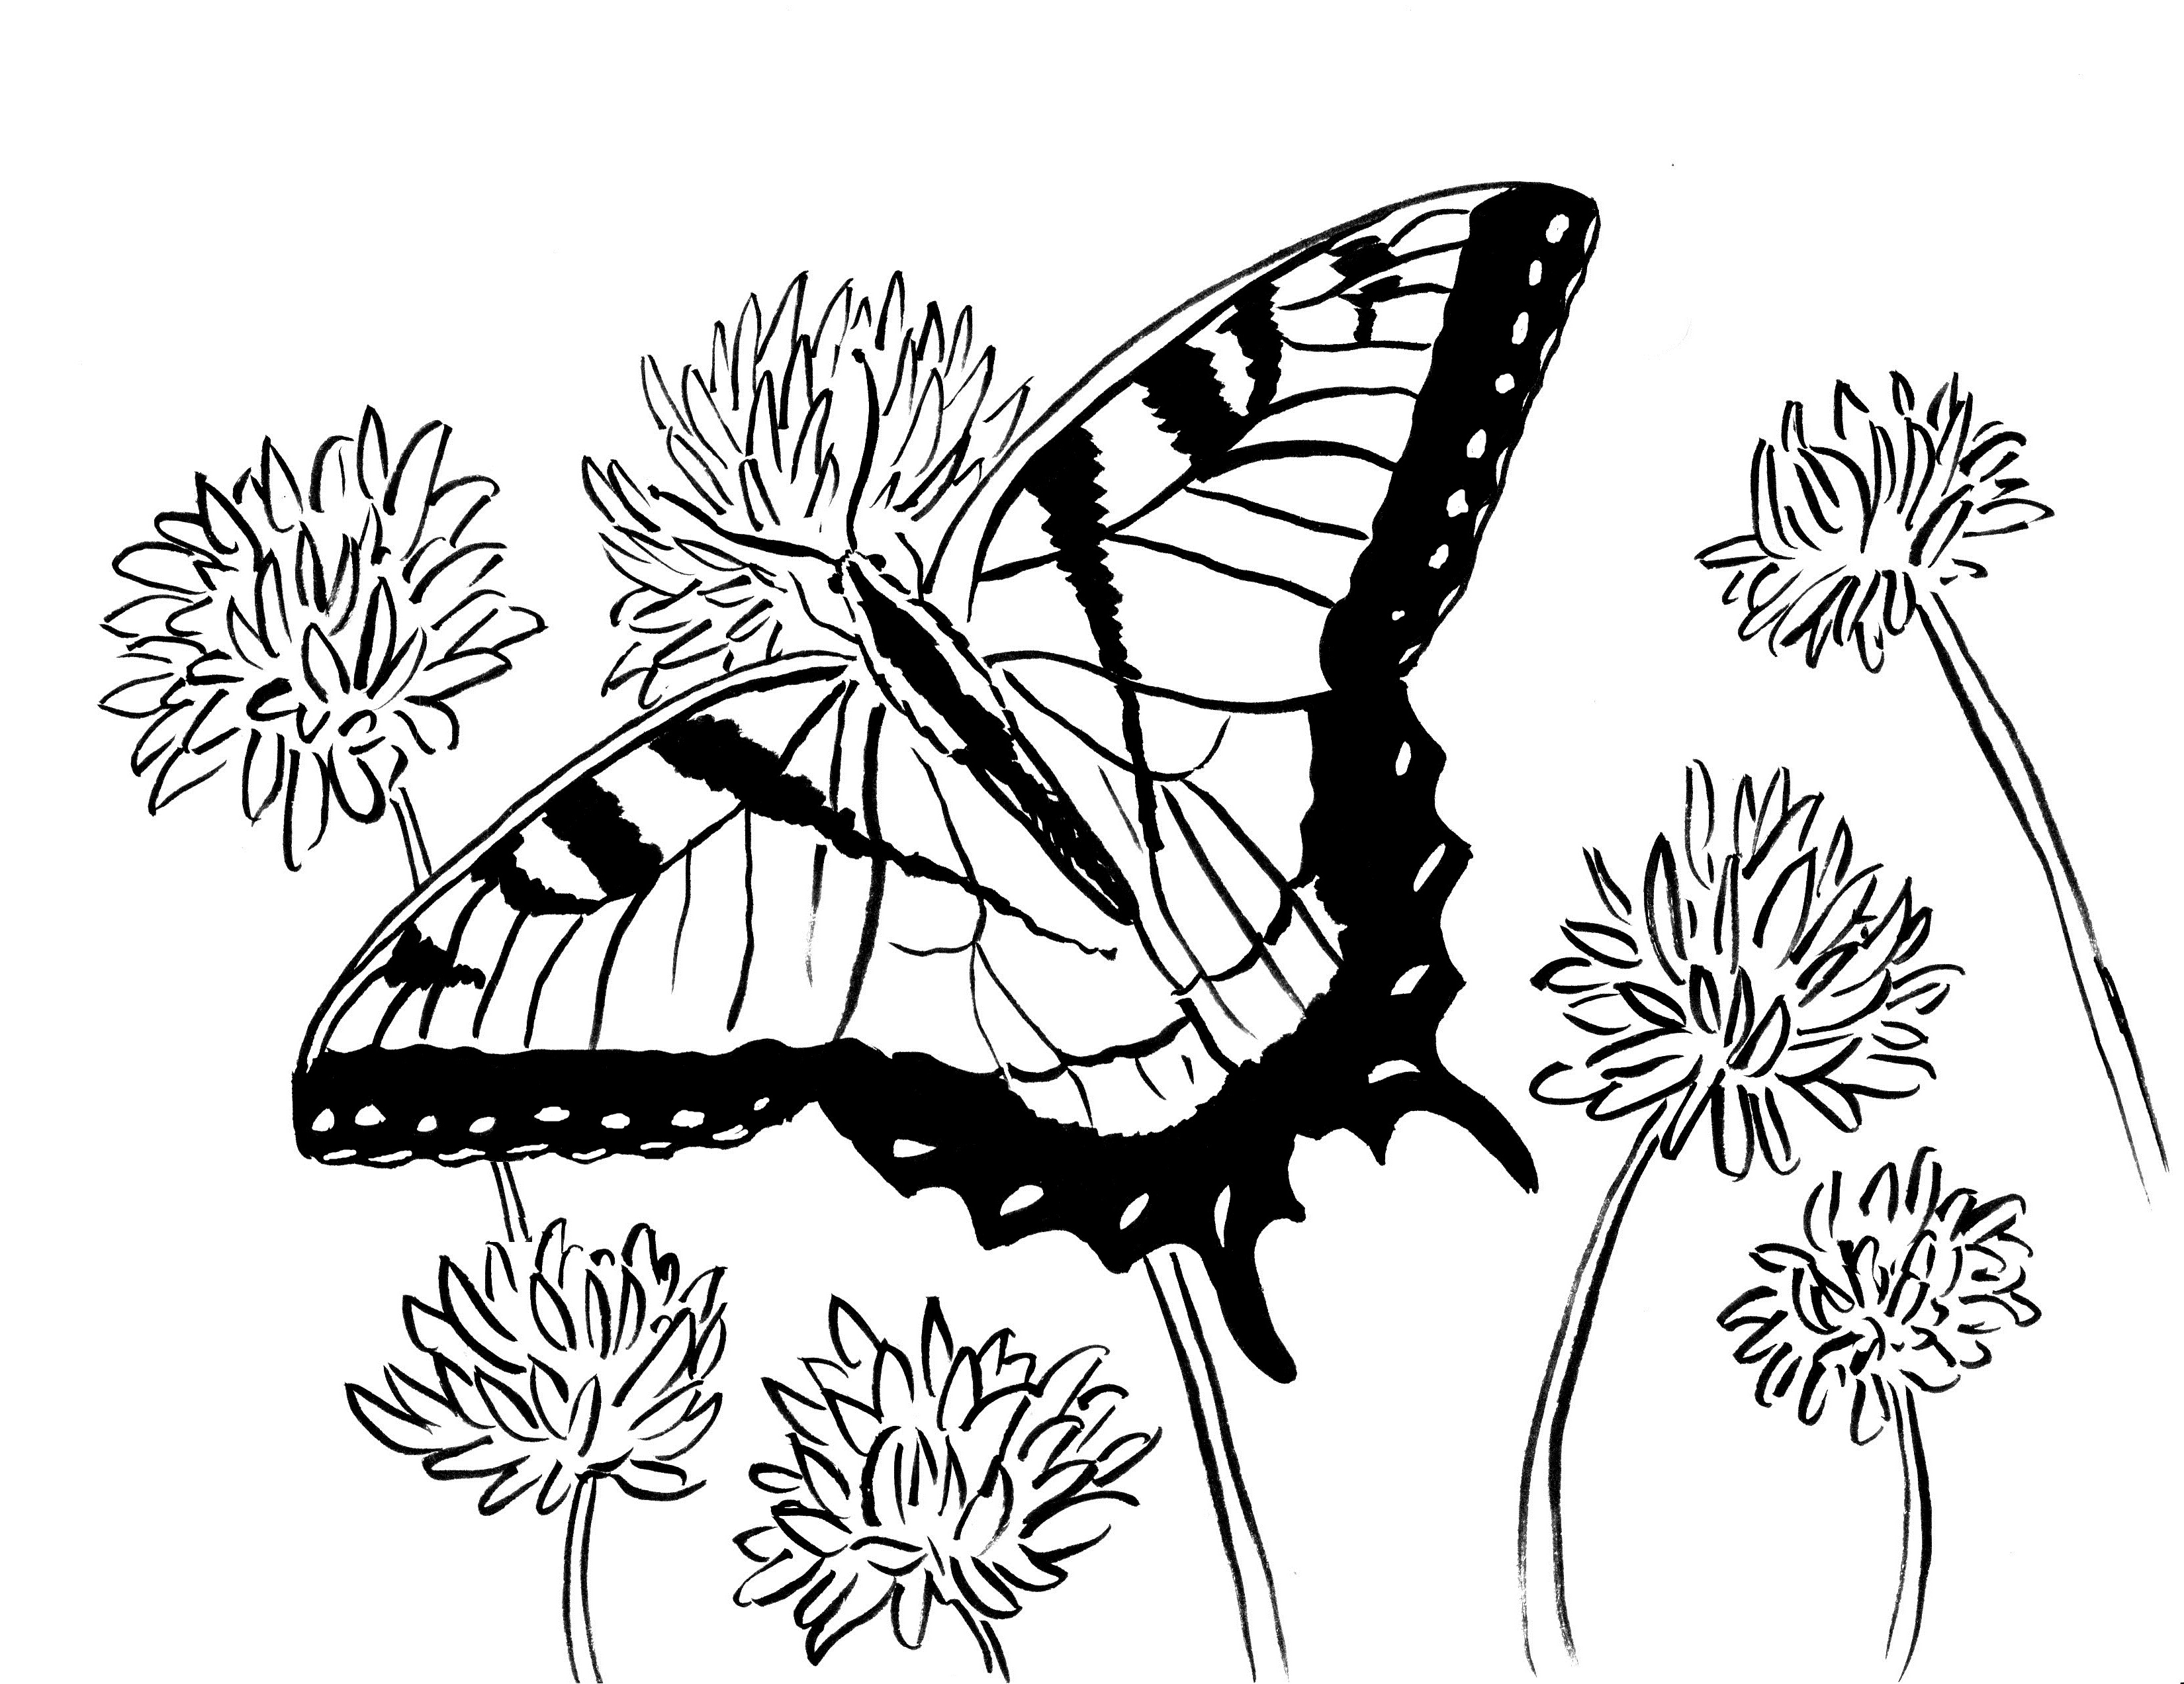 butterfly coloring book page free printable butterfly coloring page ausdruckbare book butterfly coloring page